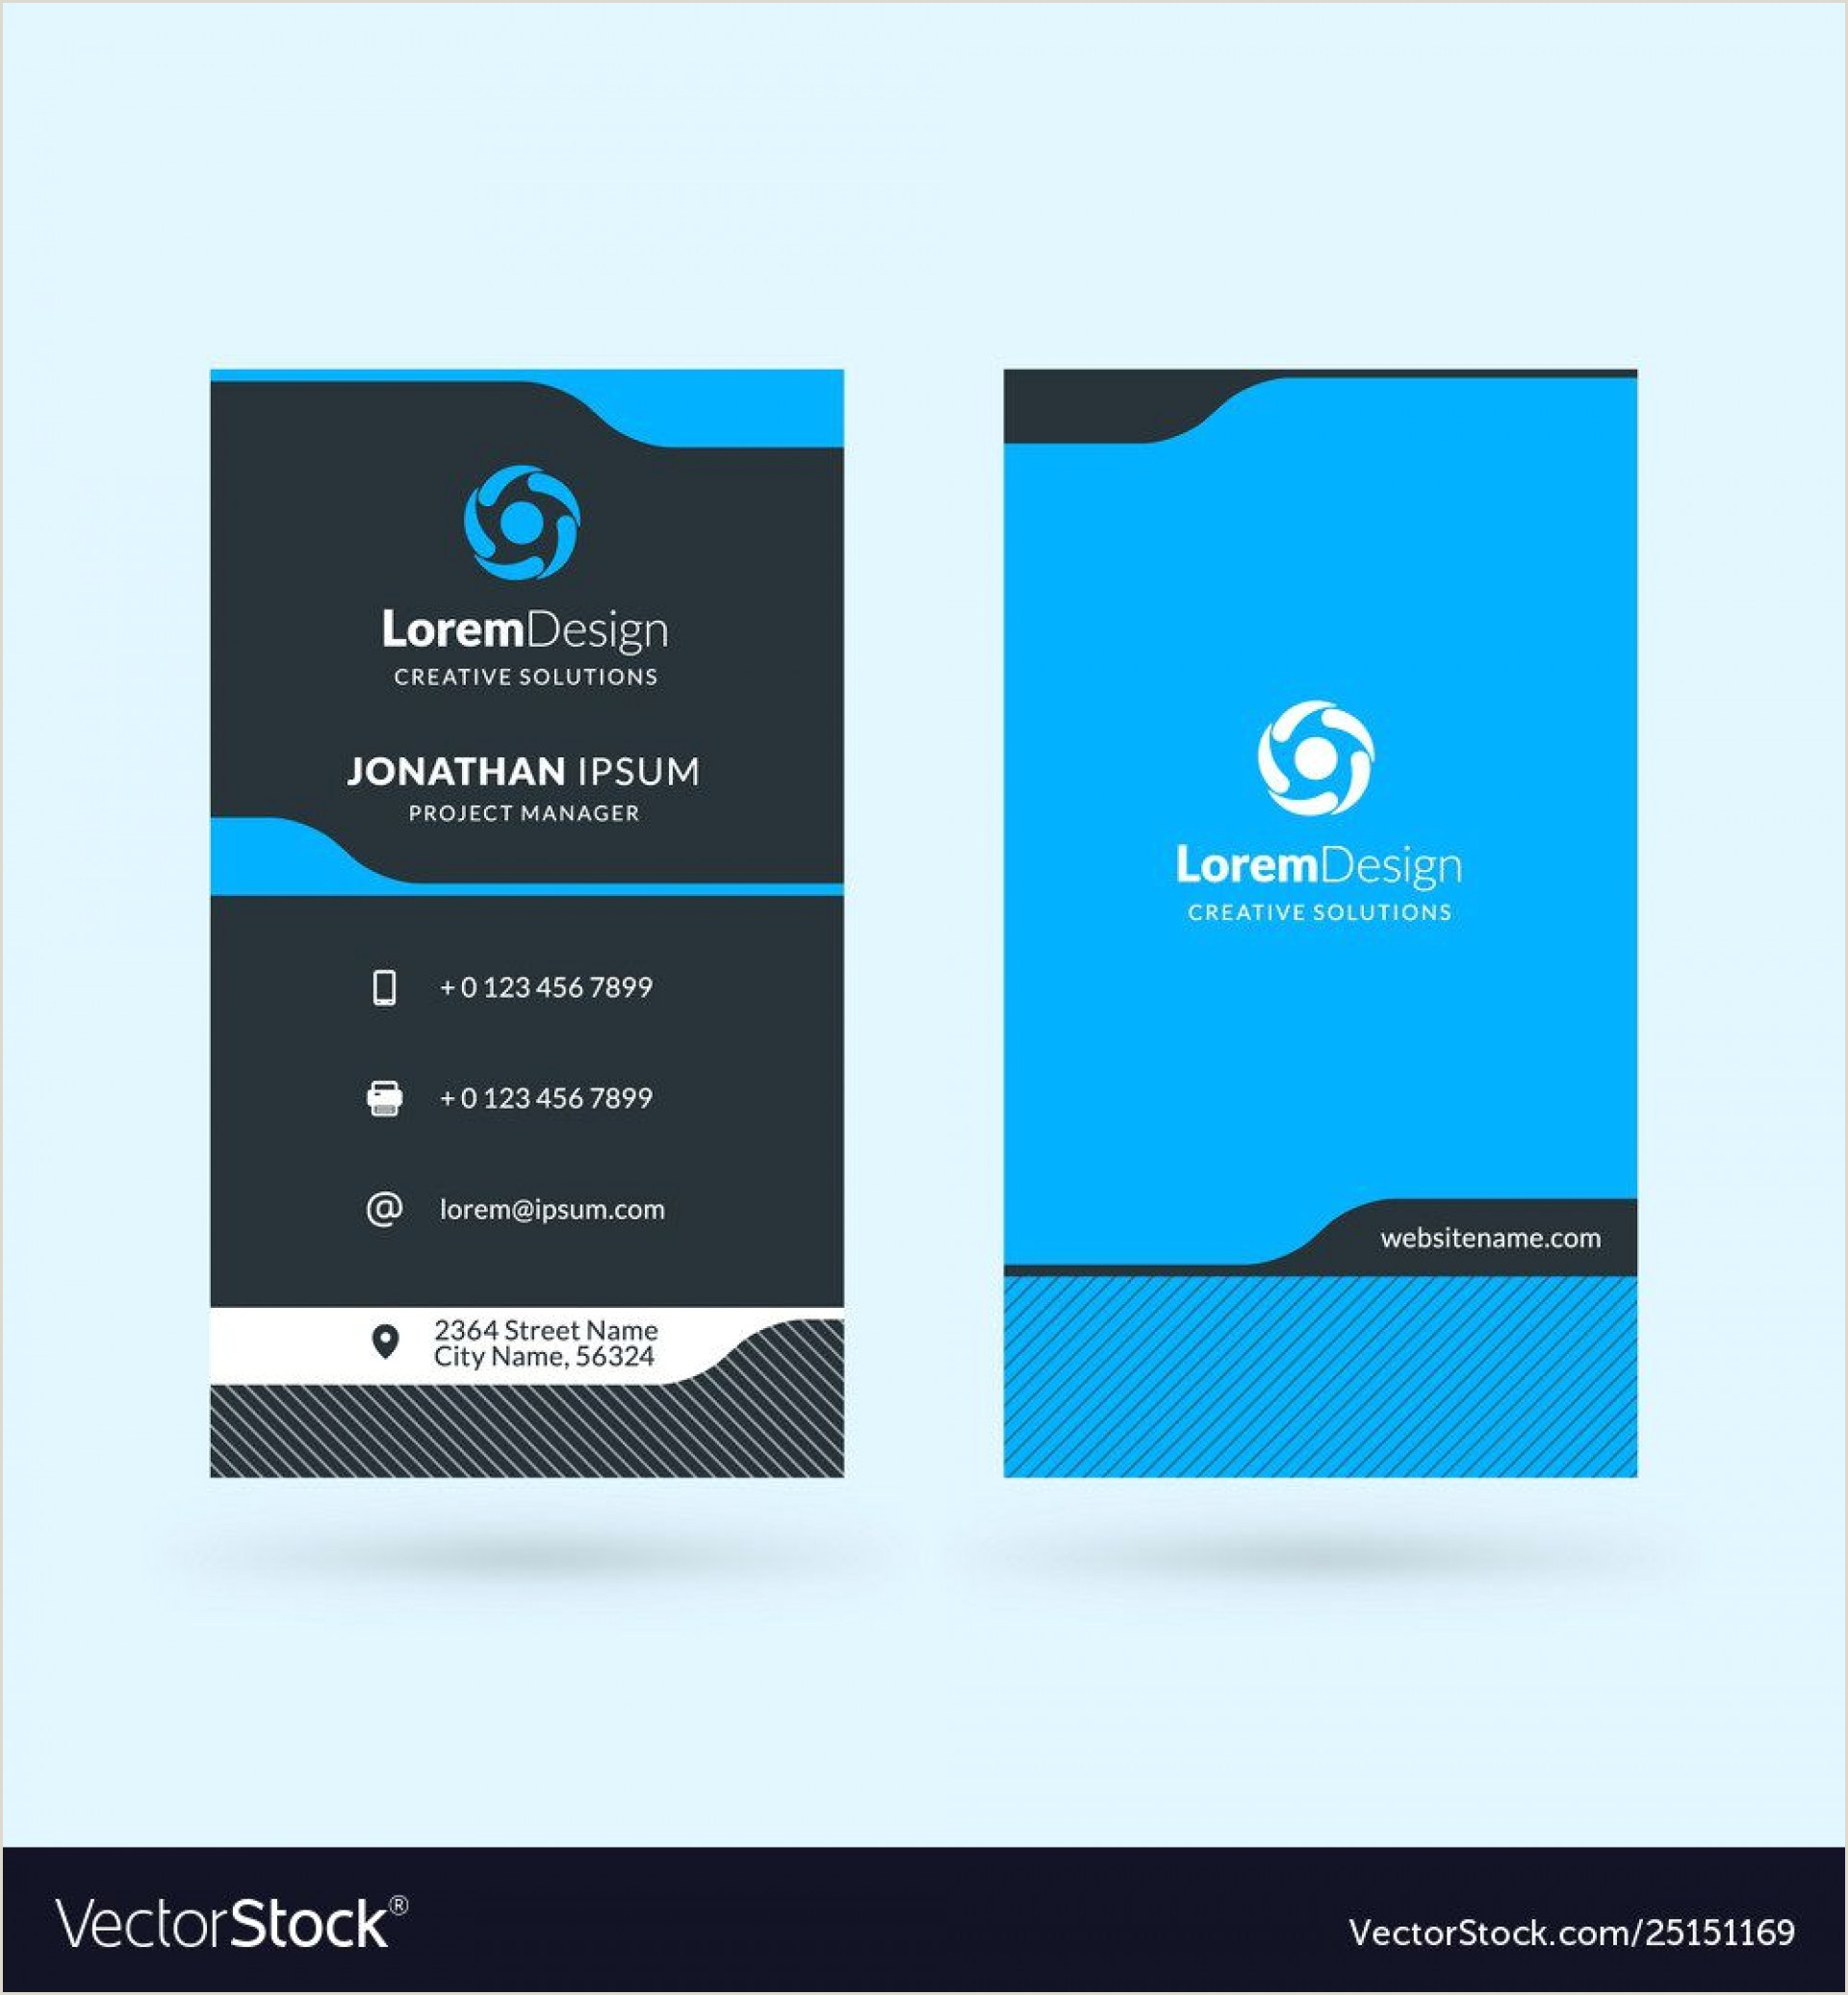 Best Business Cards 2012 Double Sided Business Card Templates Addictionary